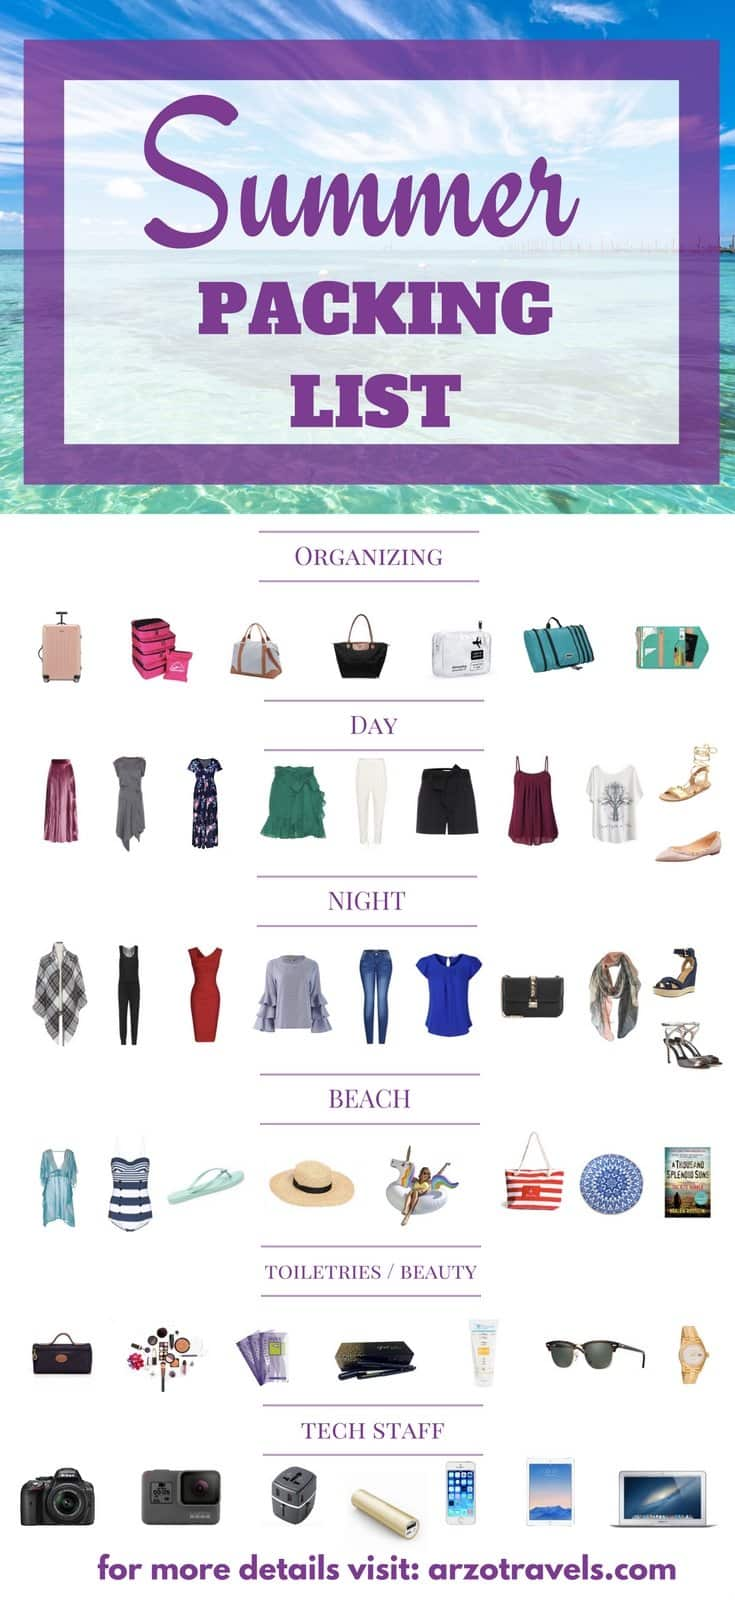 Ultimate Packing List: The Perfect Summer Packing List - find a list with all things to pack for you next summer holidays.